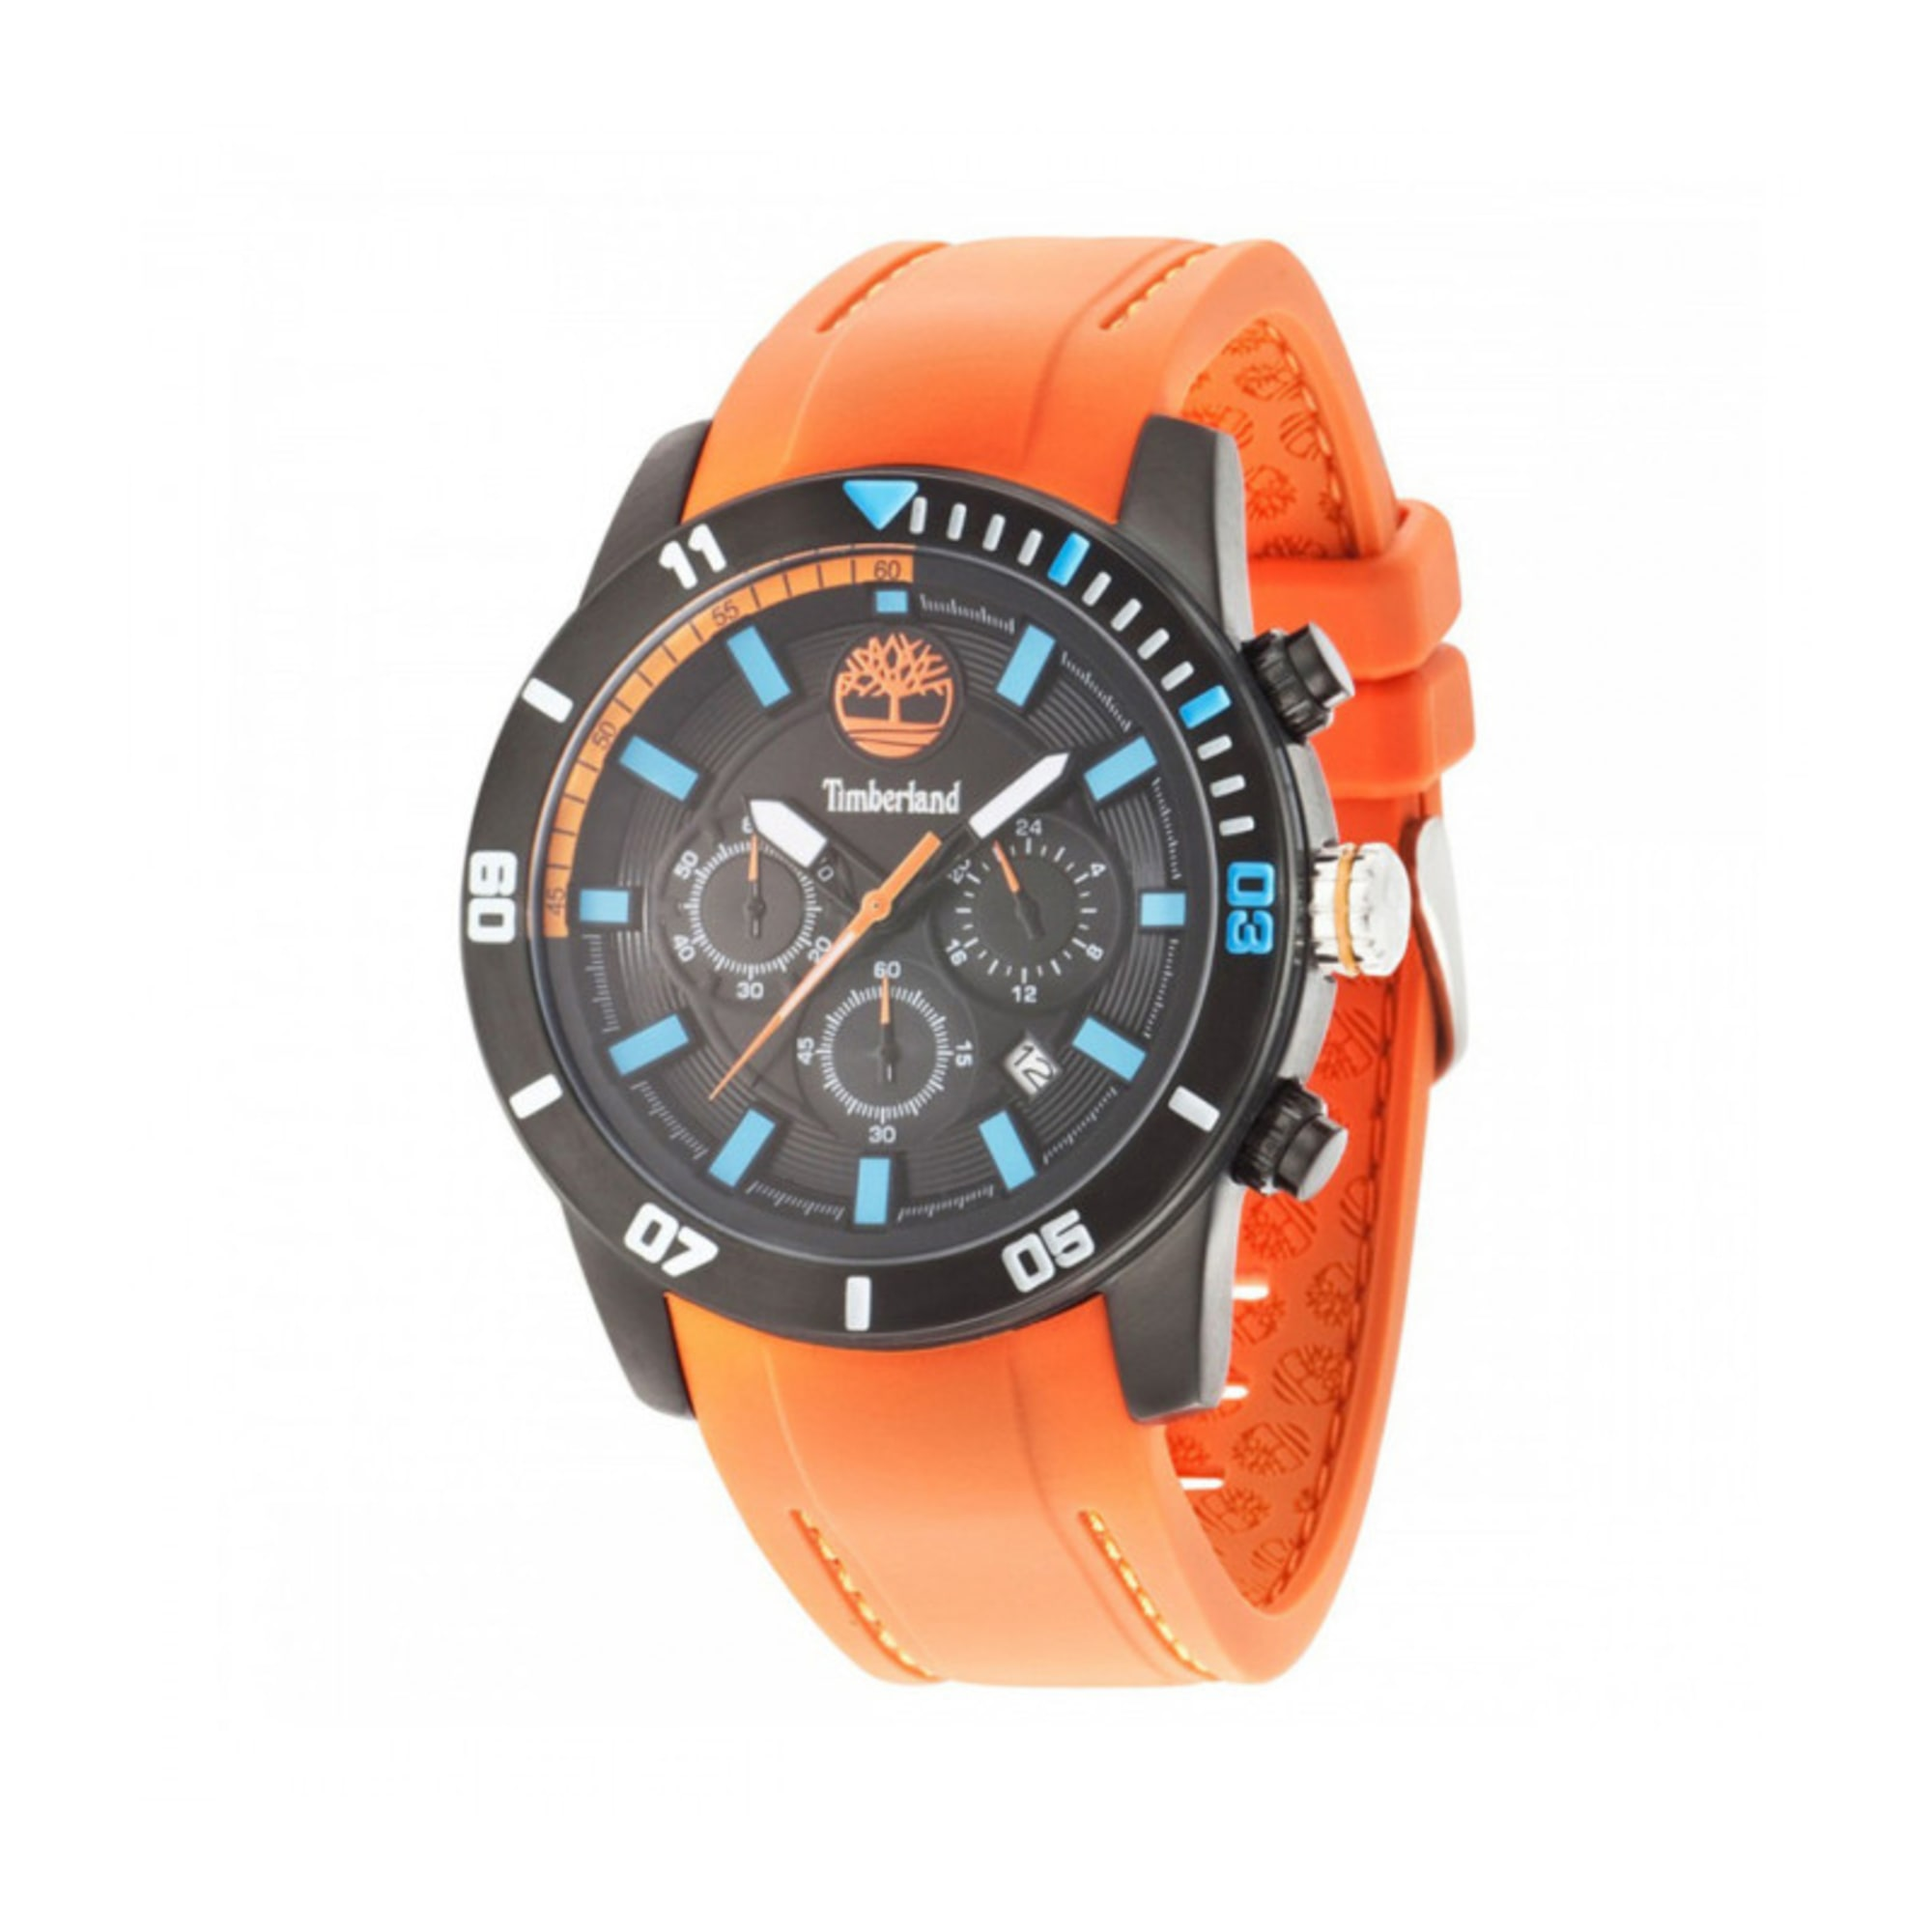 Montre au poignet TIMBERLAND Orange